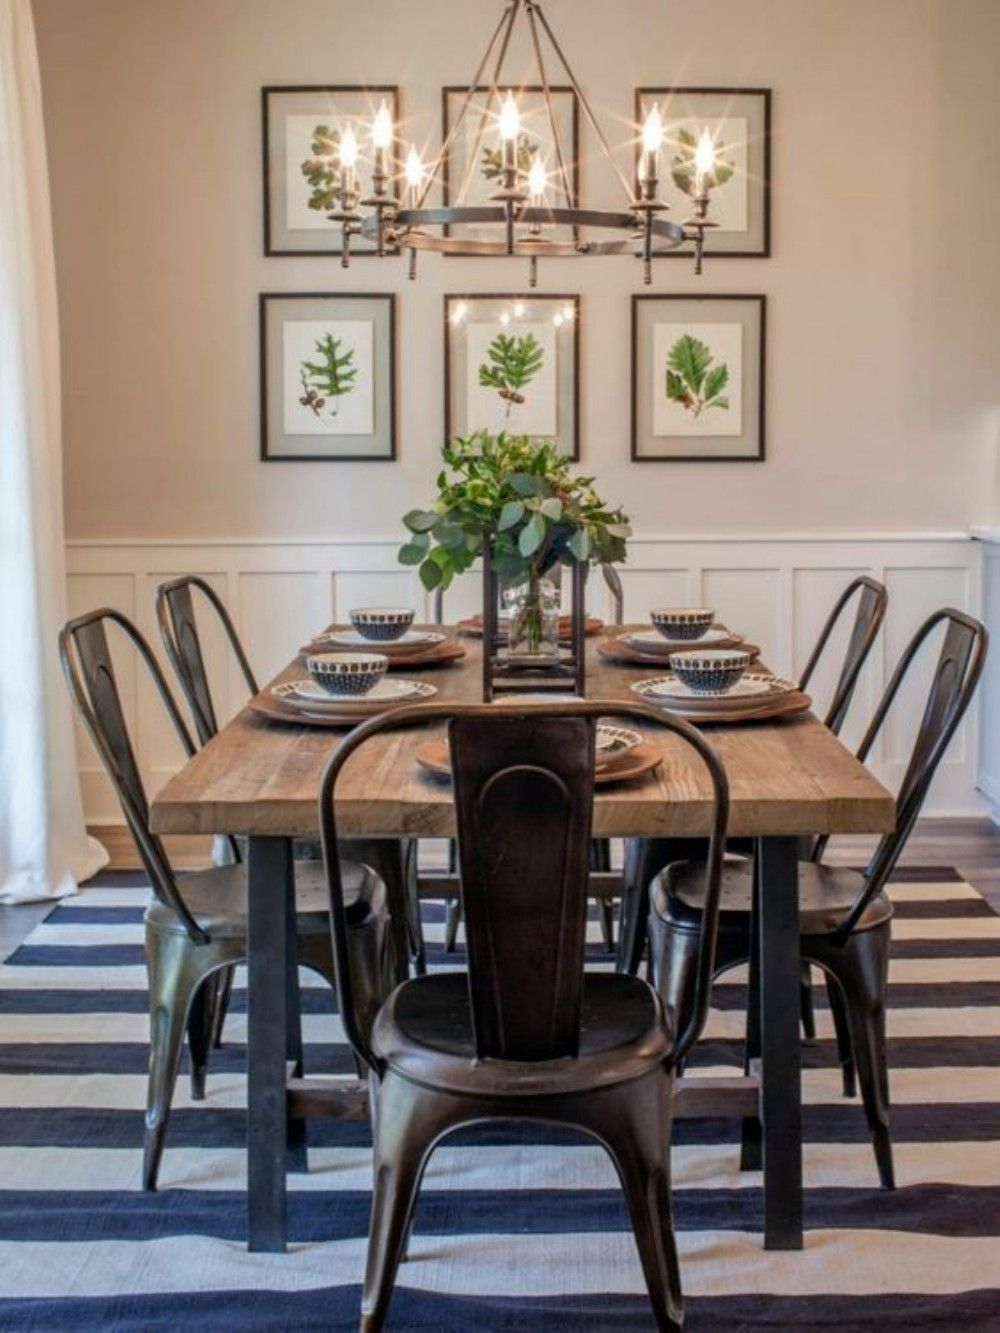 Awesome 30 Ingenious Farmhouse Table Dining Room Https://homedecort.com/2017